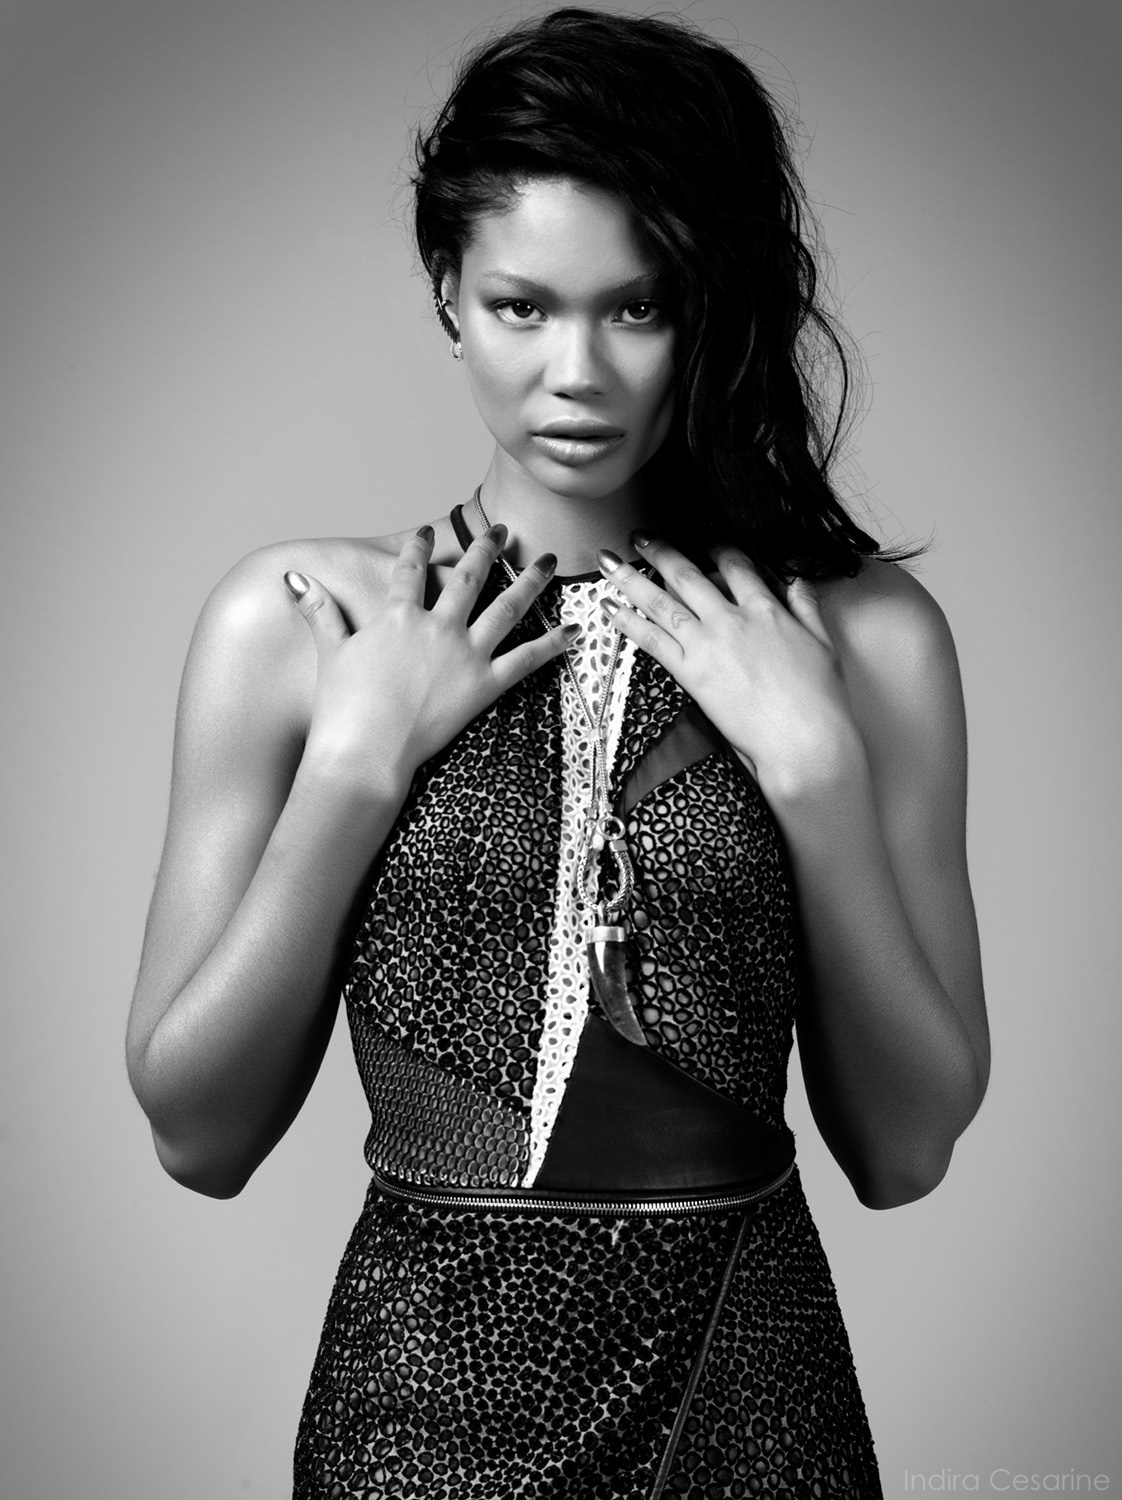 Chanel-Iman-Photography-by-Indira-Cesarine-017.jpg